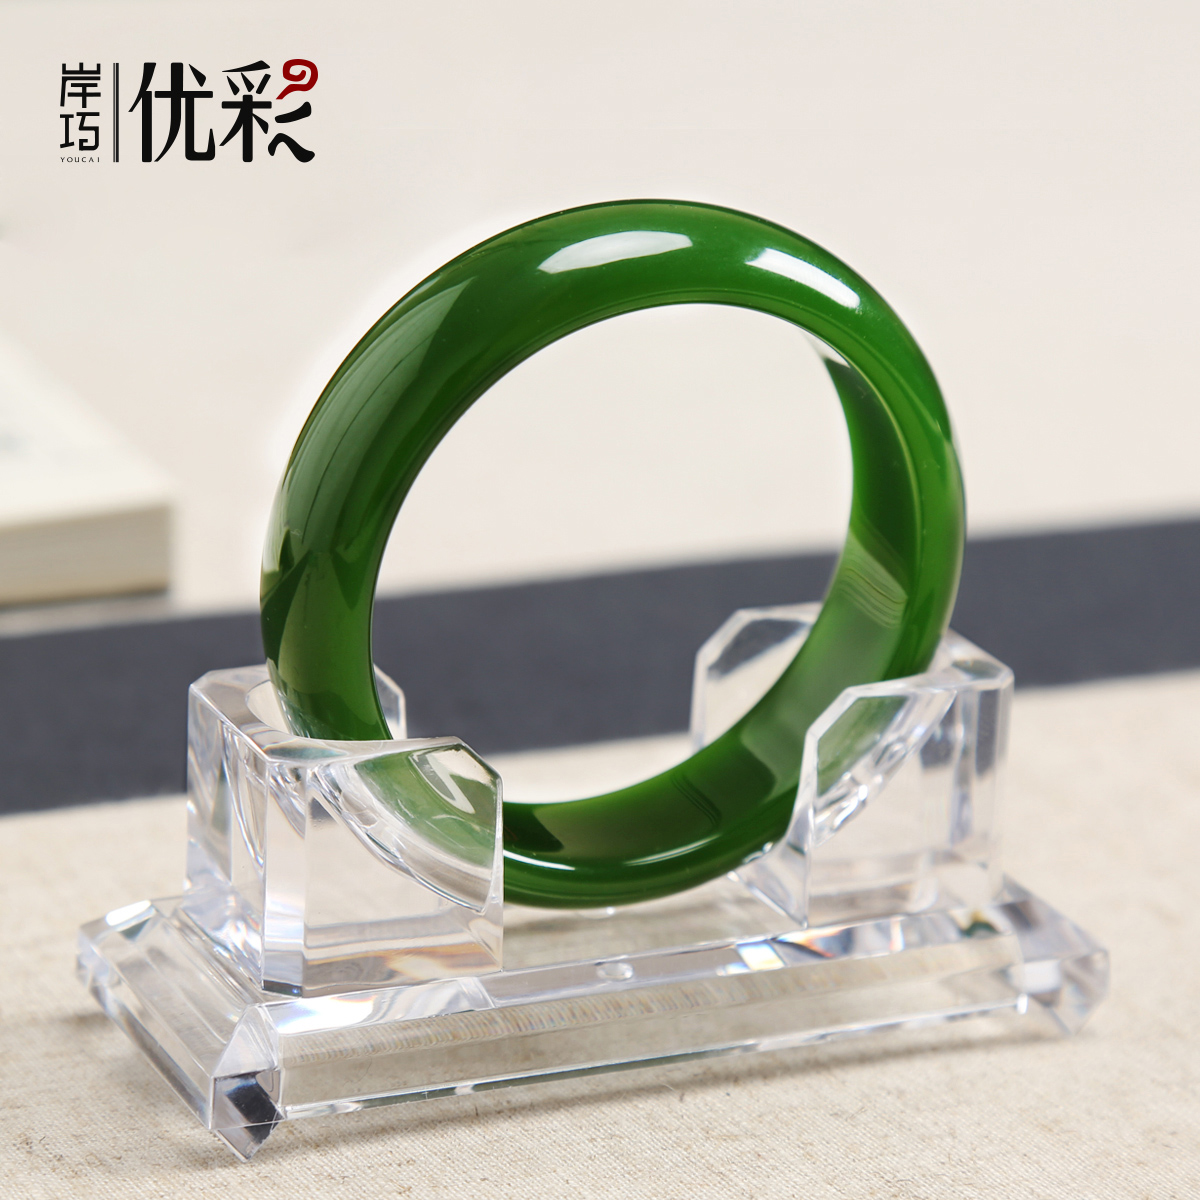 Excellent color quality transparent bangle bracelet display rack bracelet jade jewelry display stand exhibition showing the storage rack